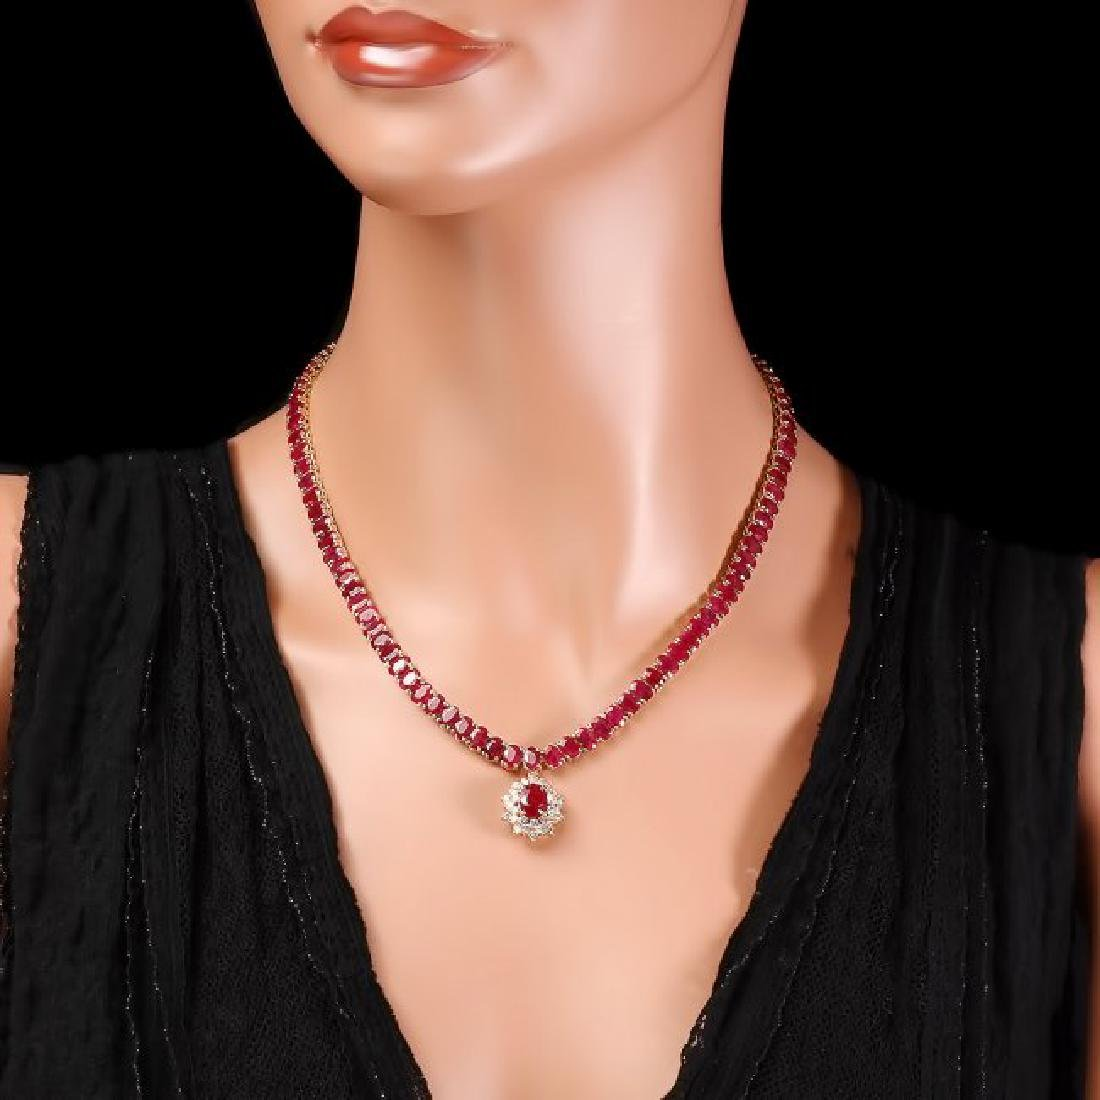 14k Gold 54.9ct Ruby 1.40ct Diamond Necklace - 6